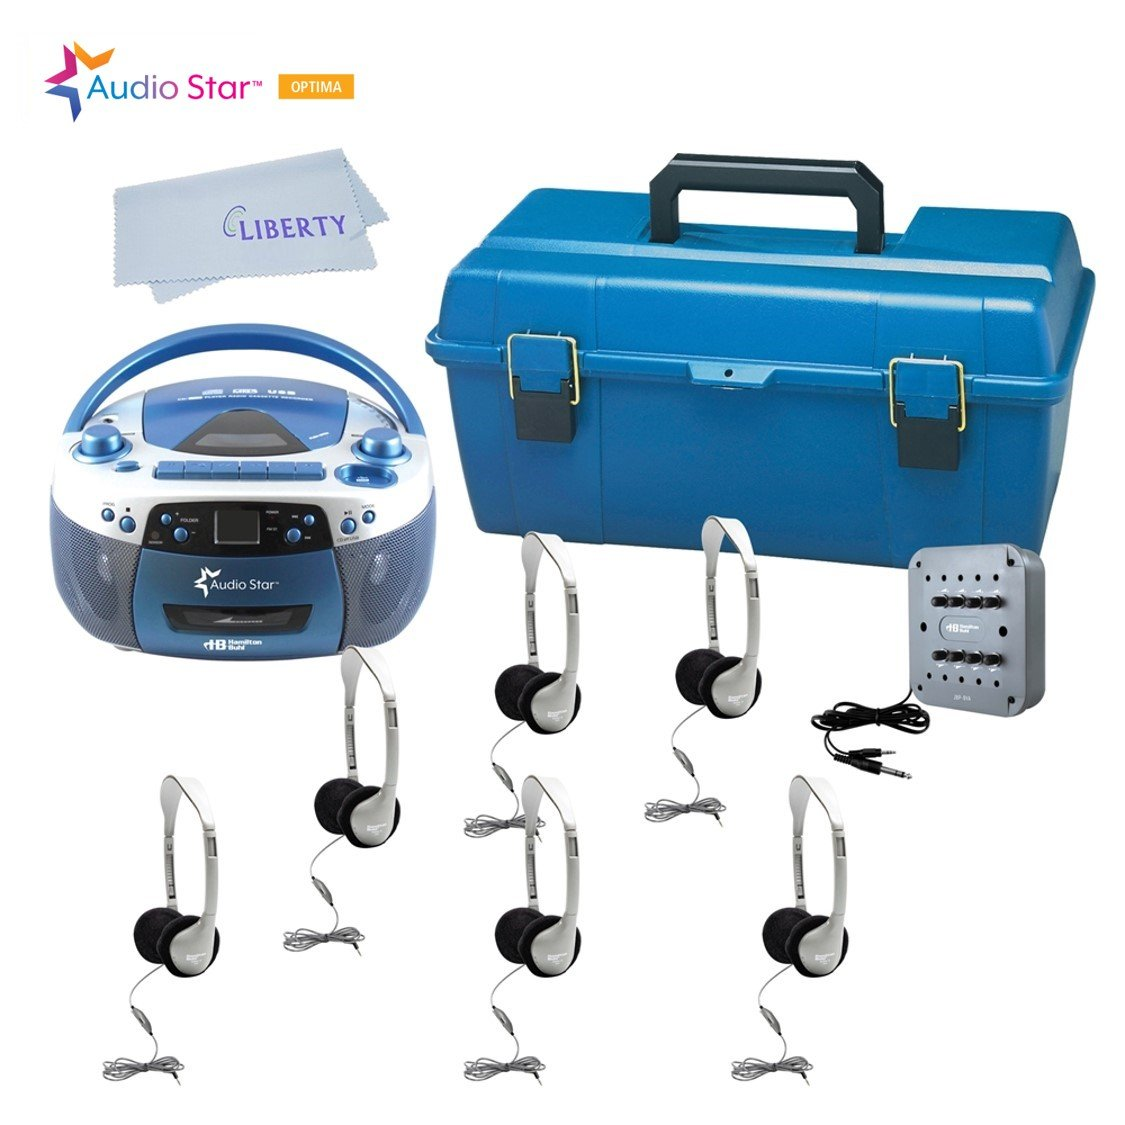 Hamilton Buhl AudioStar Optima - 6 Station Listening Center with USB, CD, Cassette and Radio Boombox with Liberty Cloth